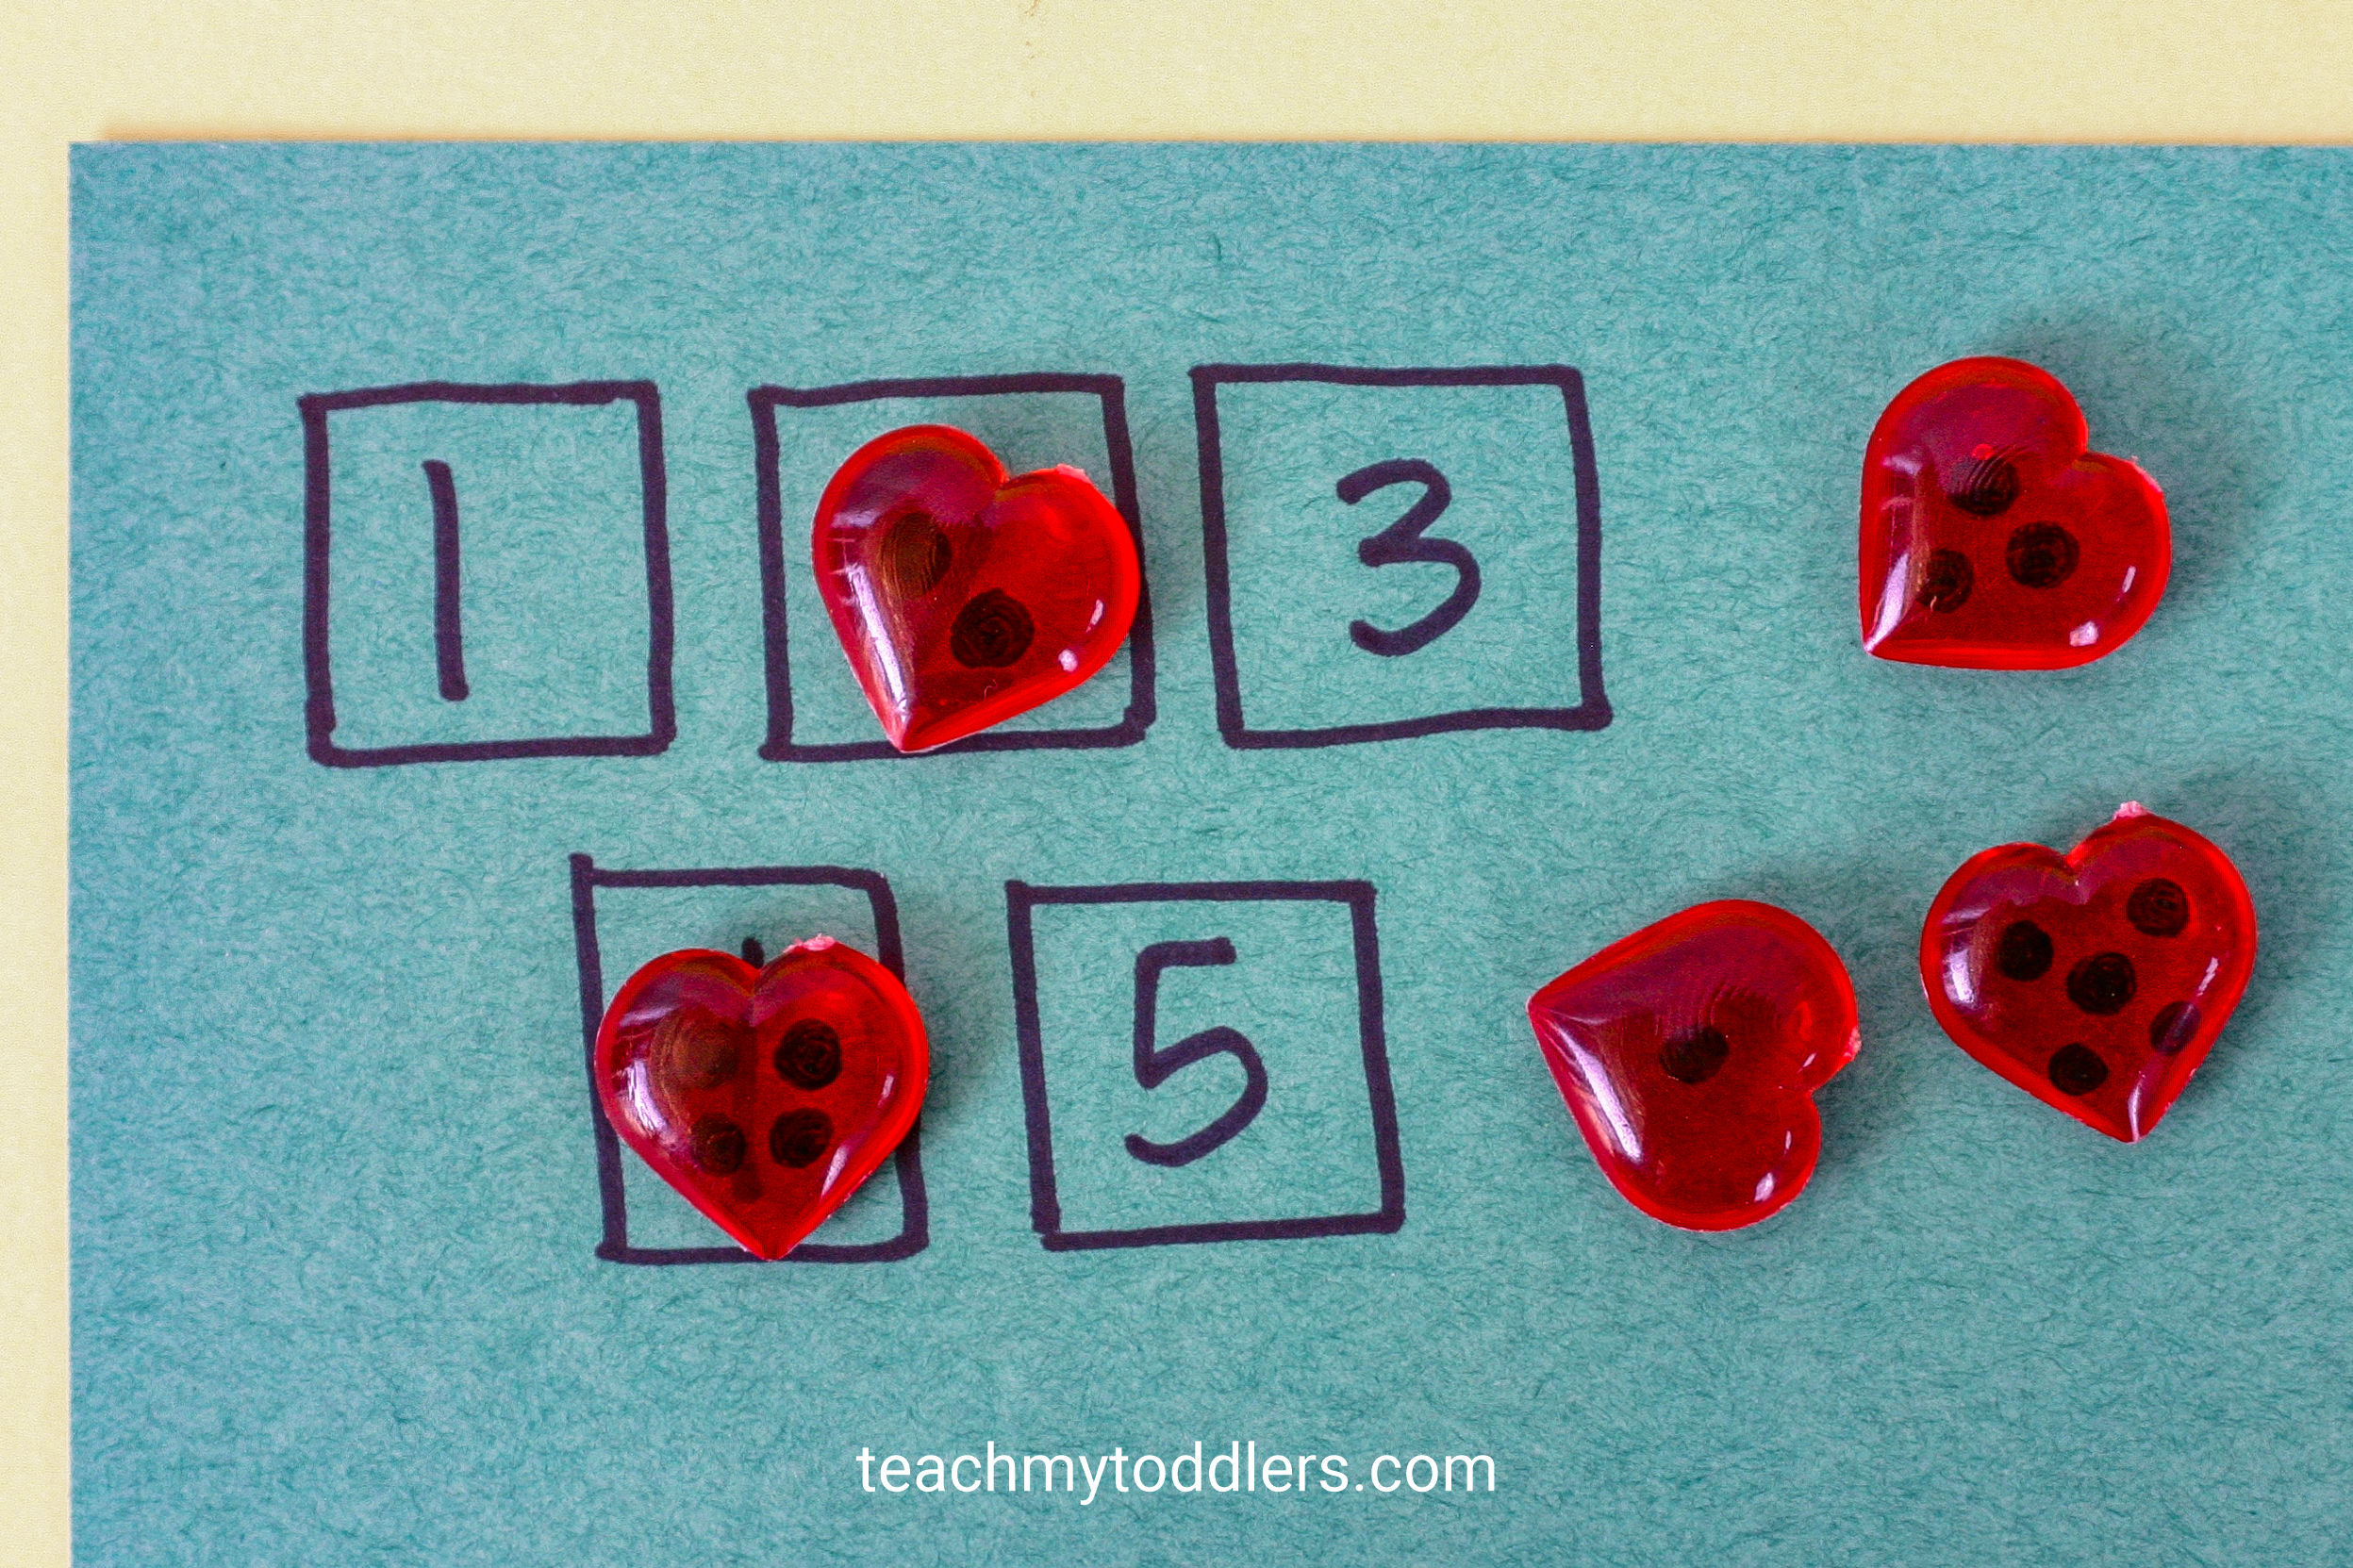 Discover how to use these fun table scatter activities to teach toddlers math